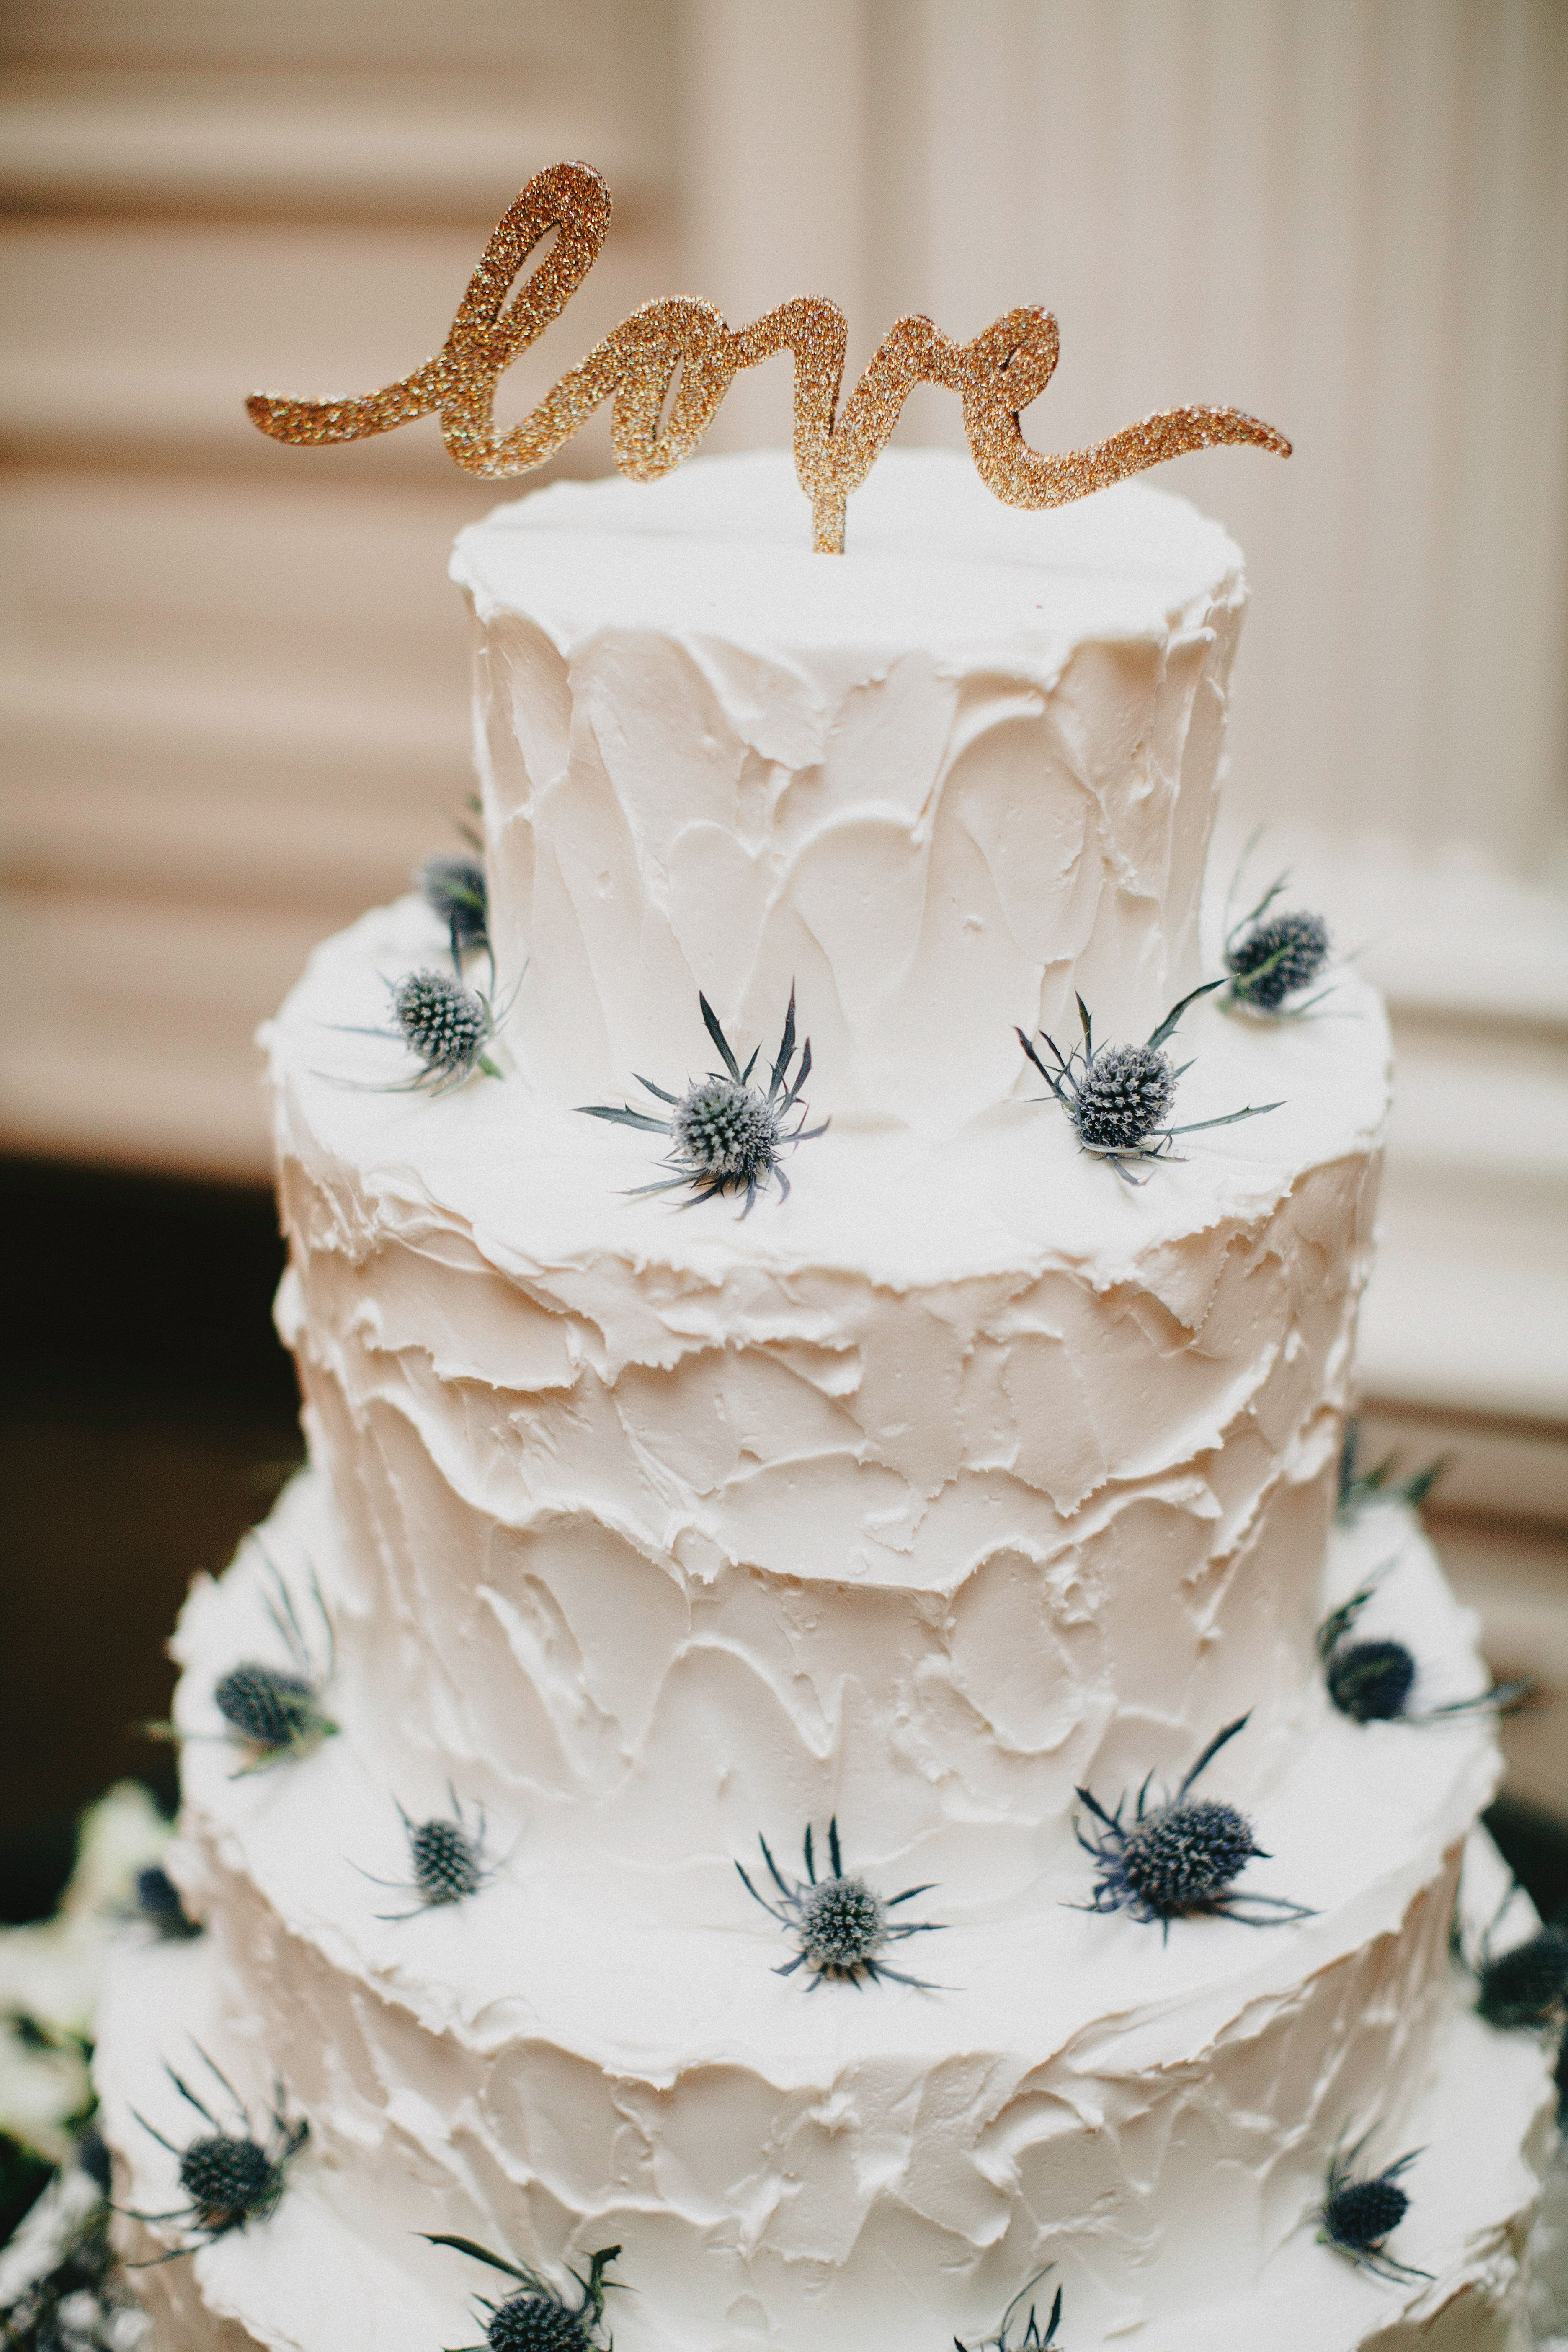 Rustic Blue Thistle-Decorated Wedding Cake | cakes | Pinterest ...